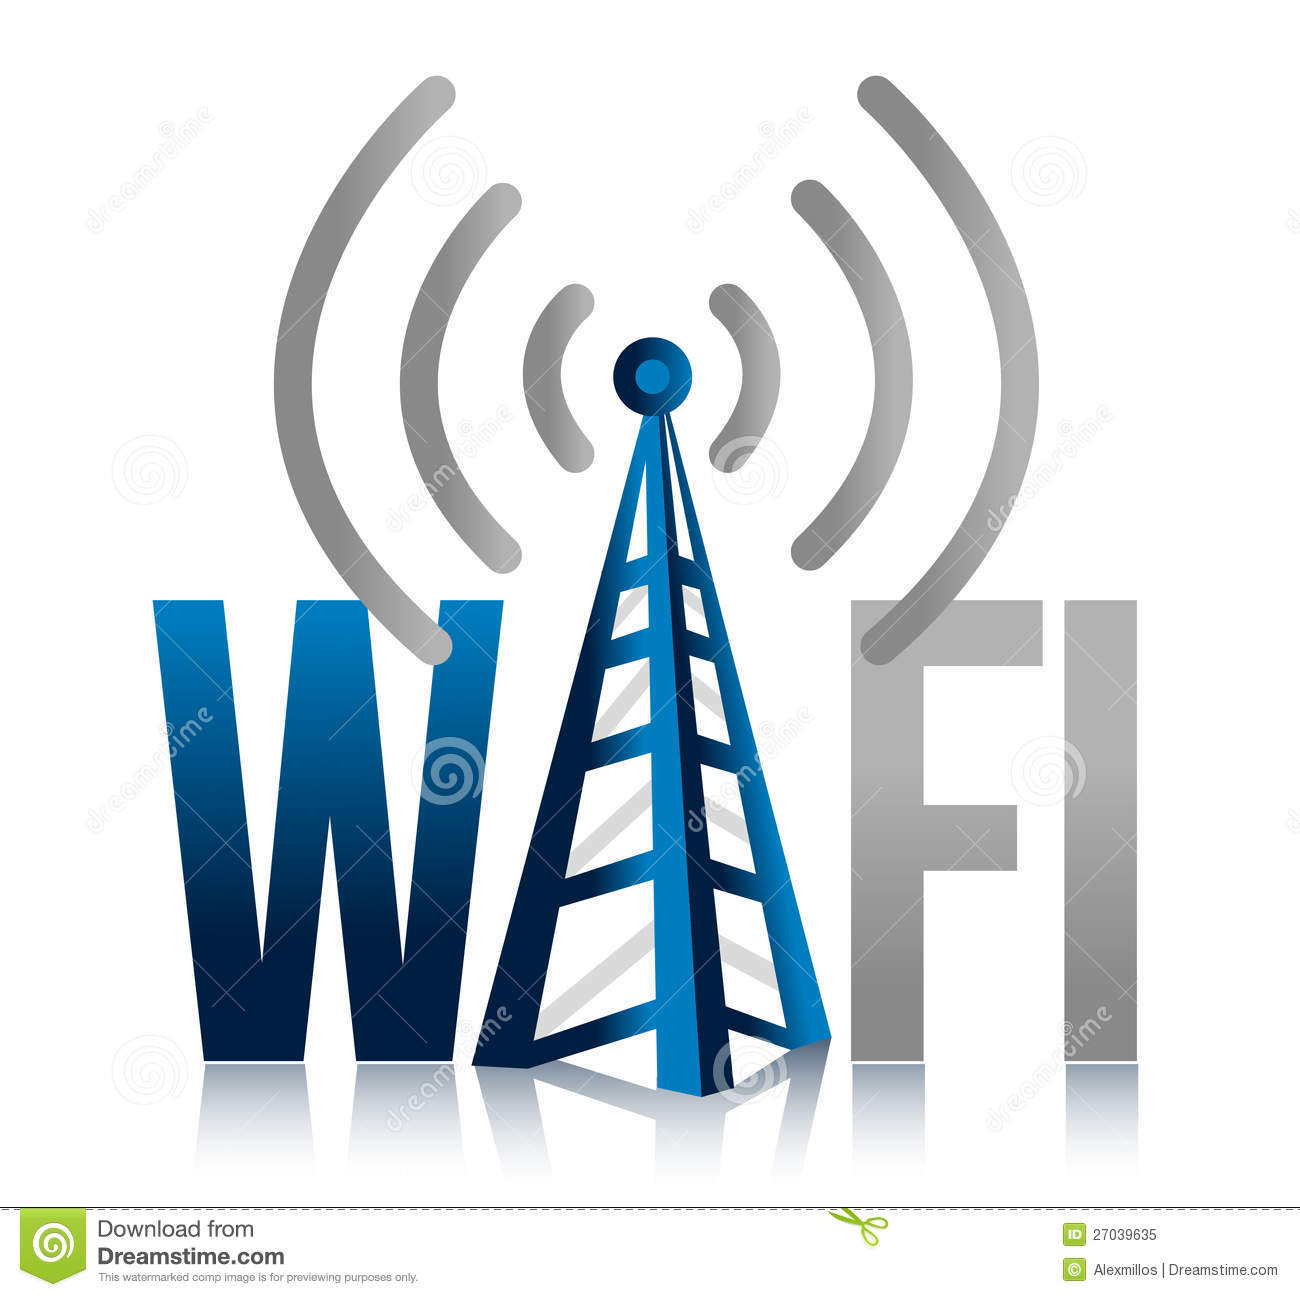 Wi fi tower illustration design sign royalty free stock for Architecture wifi